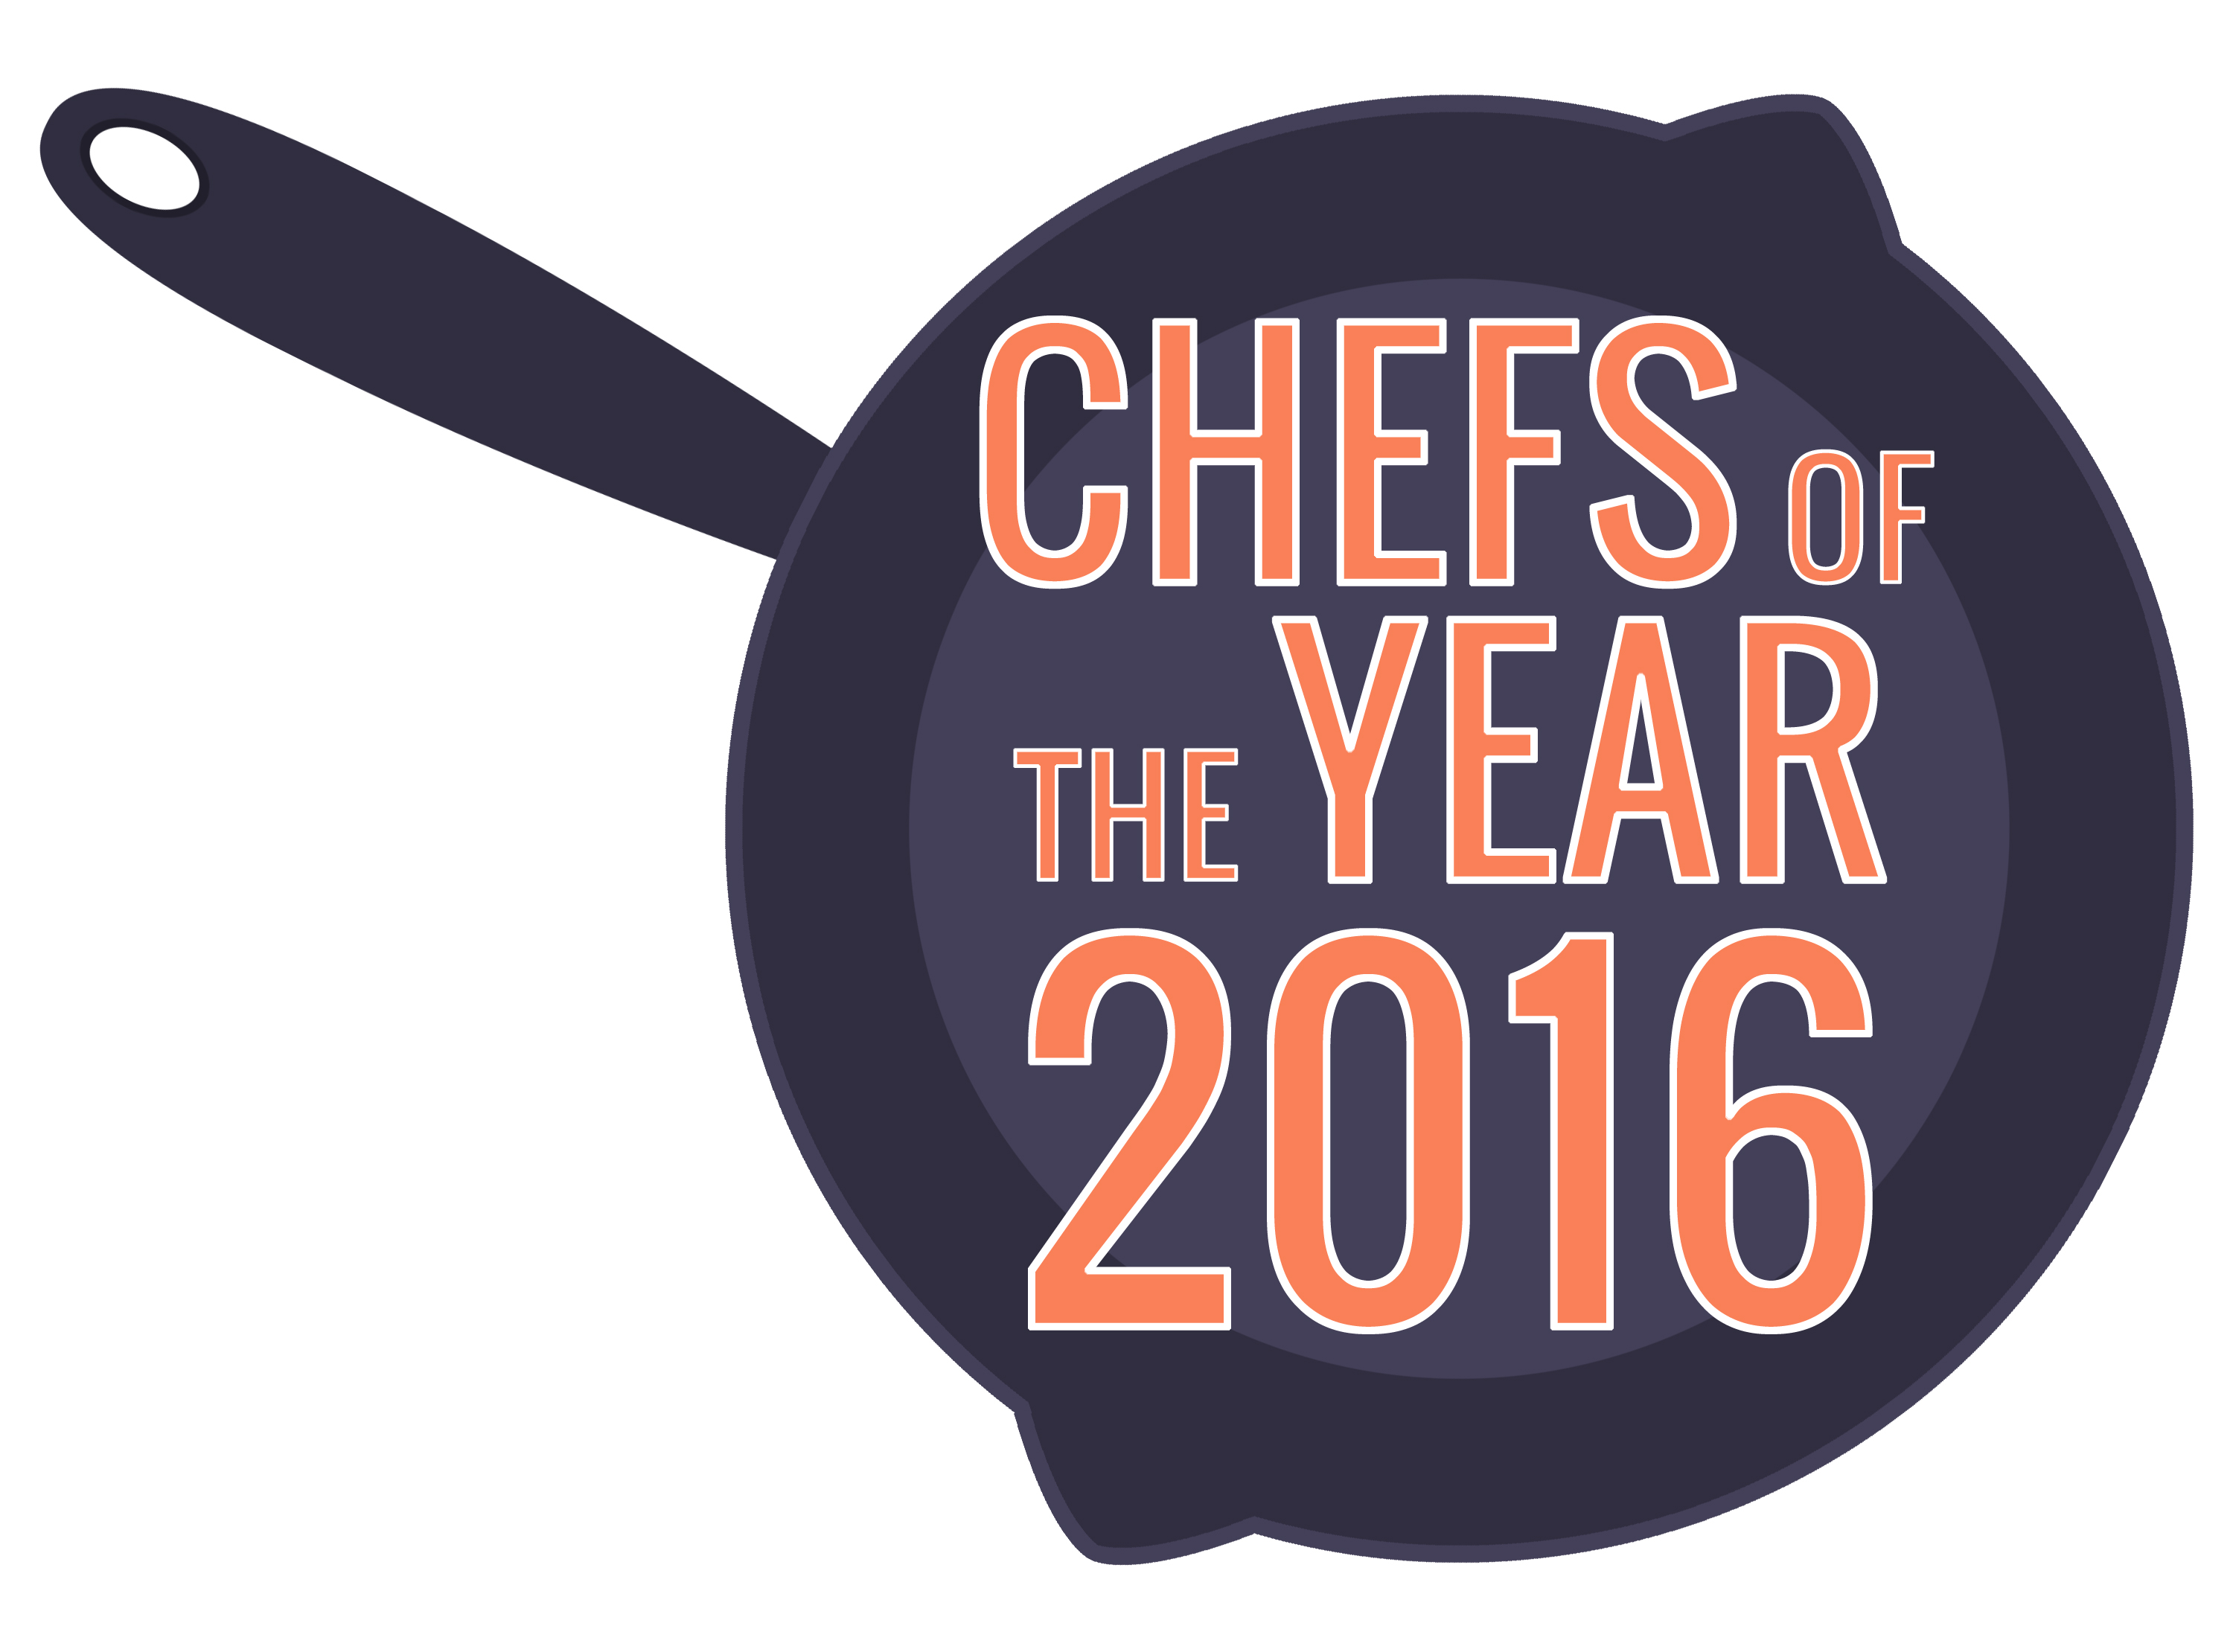 Chefs of the Year 2016